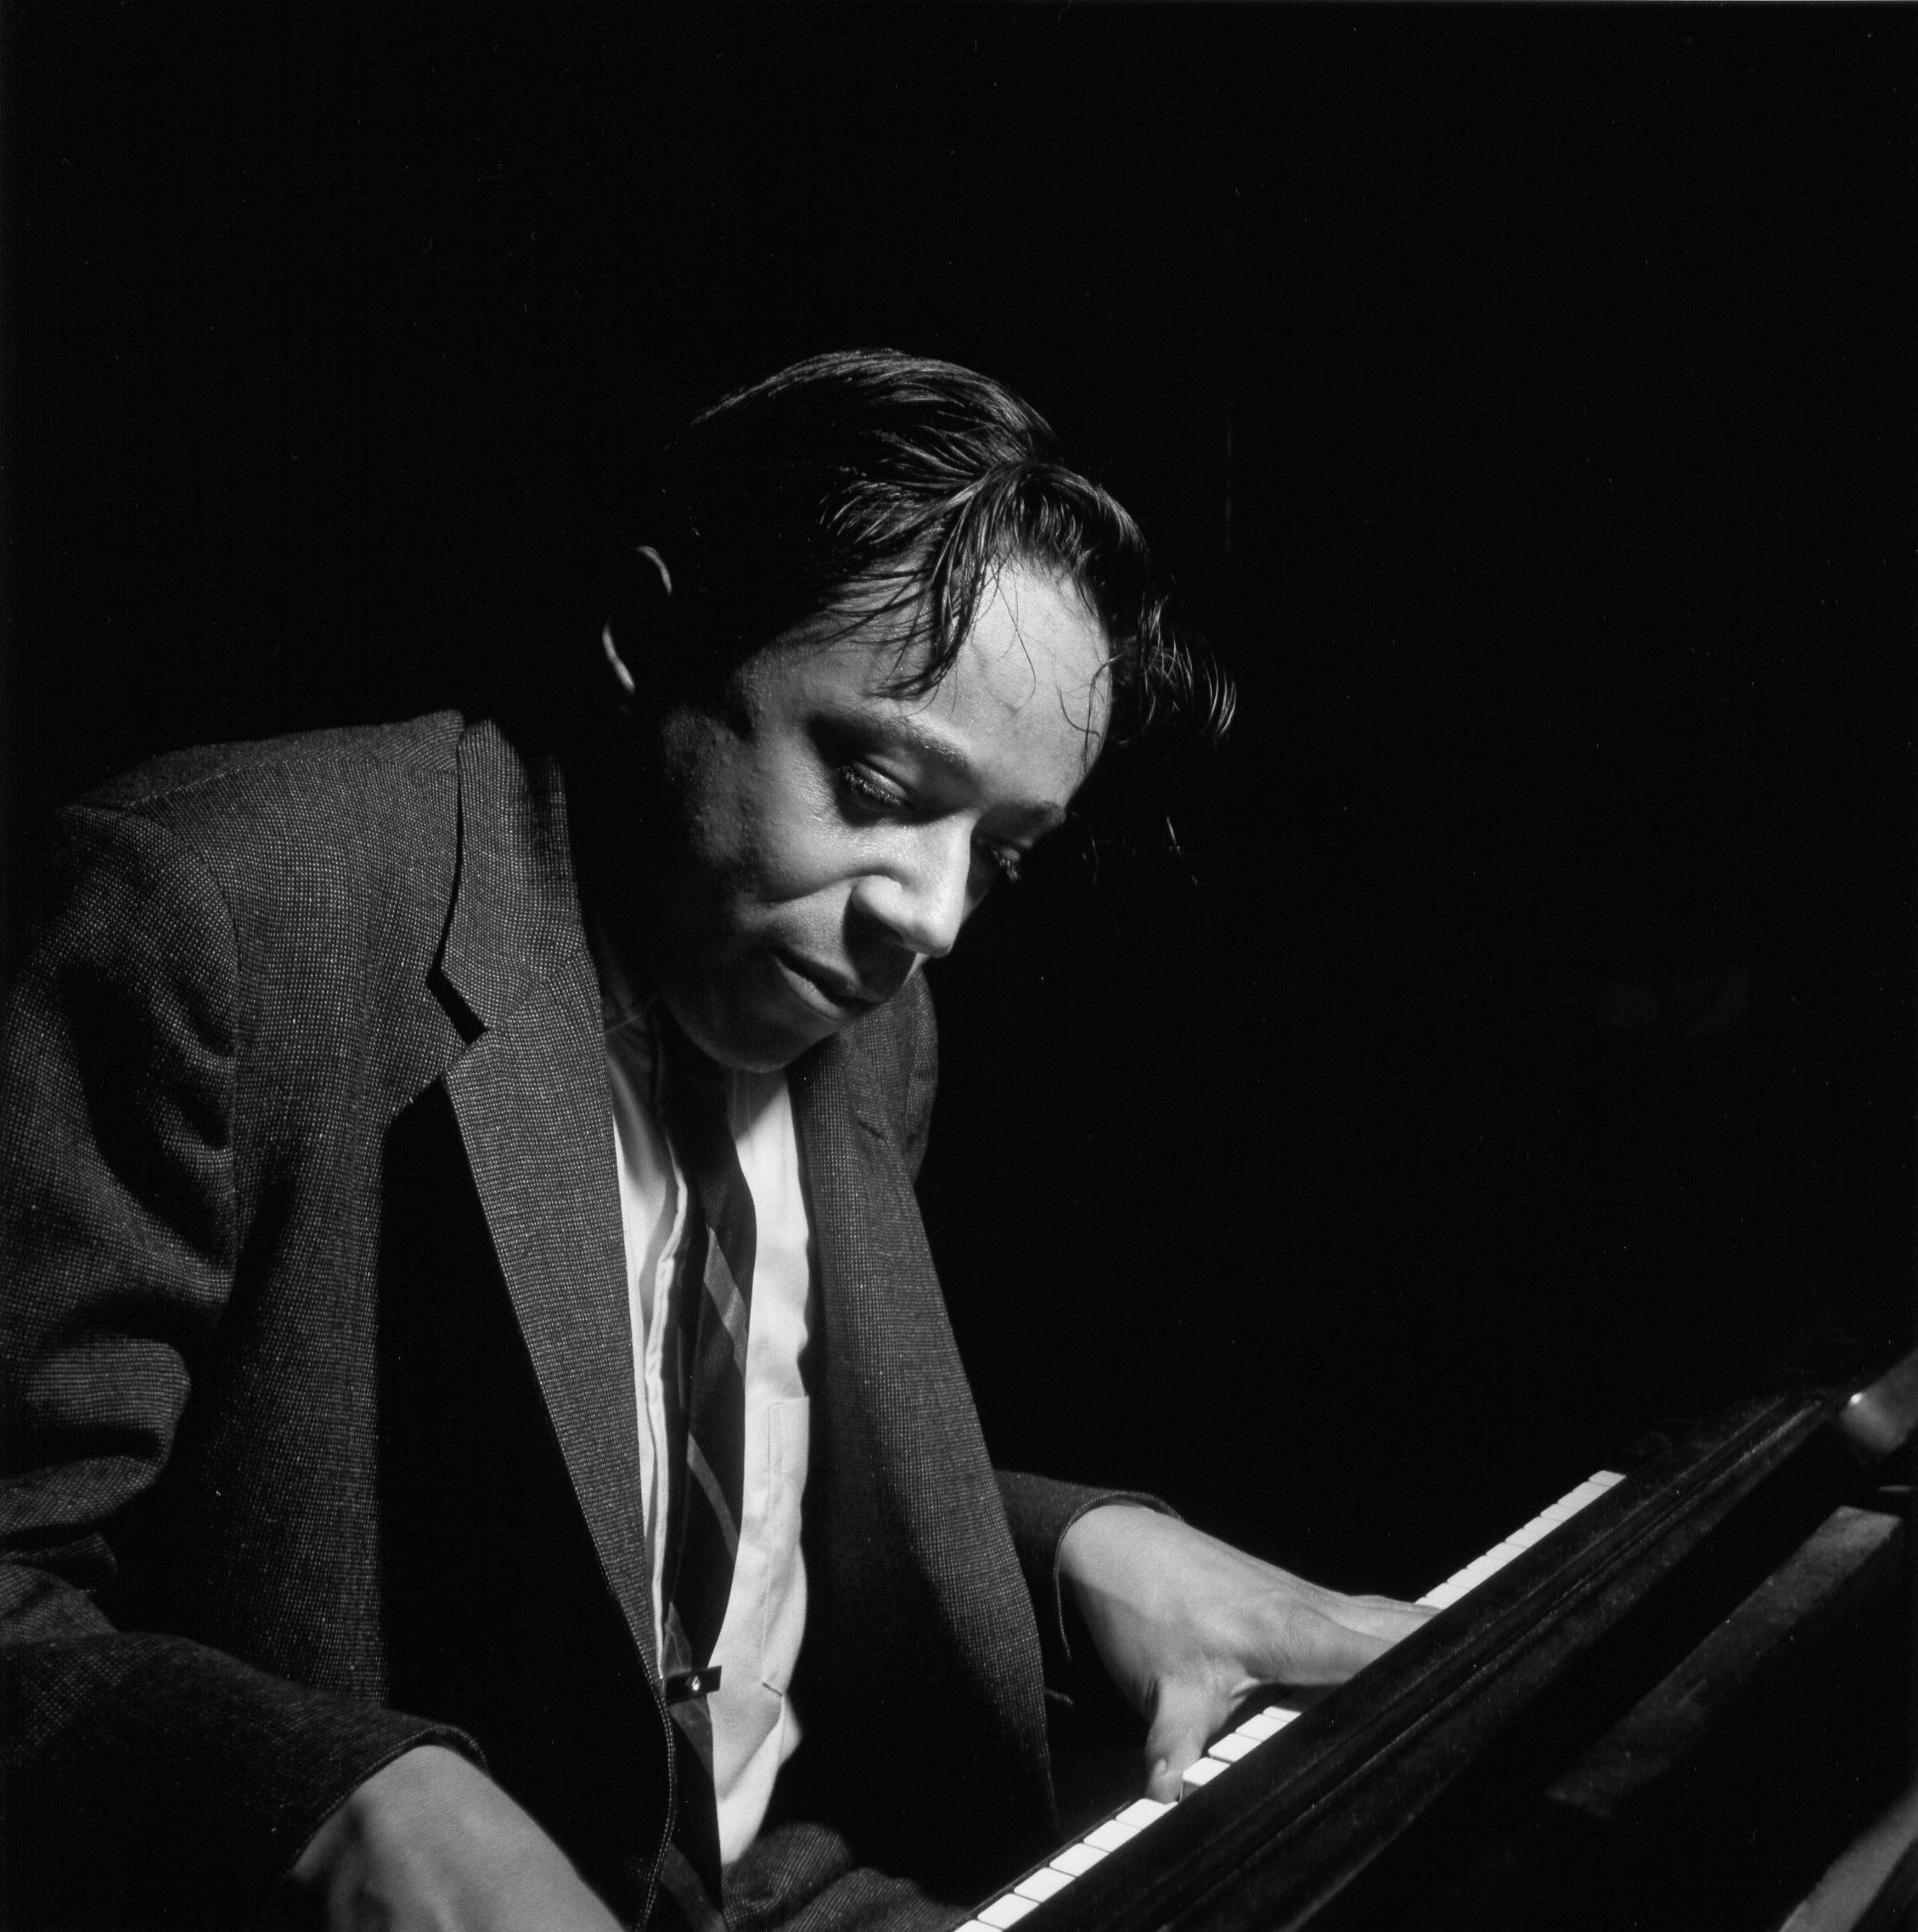 """This month's iTunes.com/BlueNote spotlight honors the late, great Horace Silver. Explore the pianist's extensive Blue Note catalog & d/l the free podcast """"Now Hear This"""" with host Don Was leading a tour across Horace's illustrious career at http://itunes.com/bluenote."""